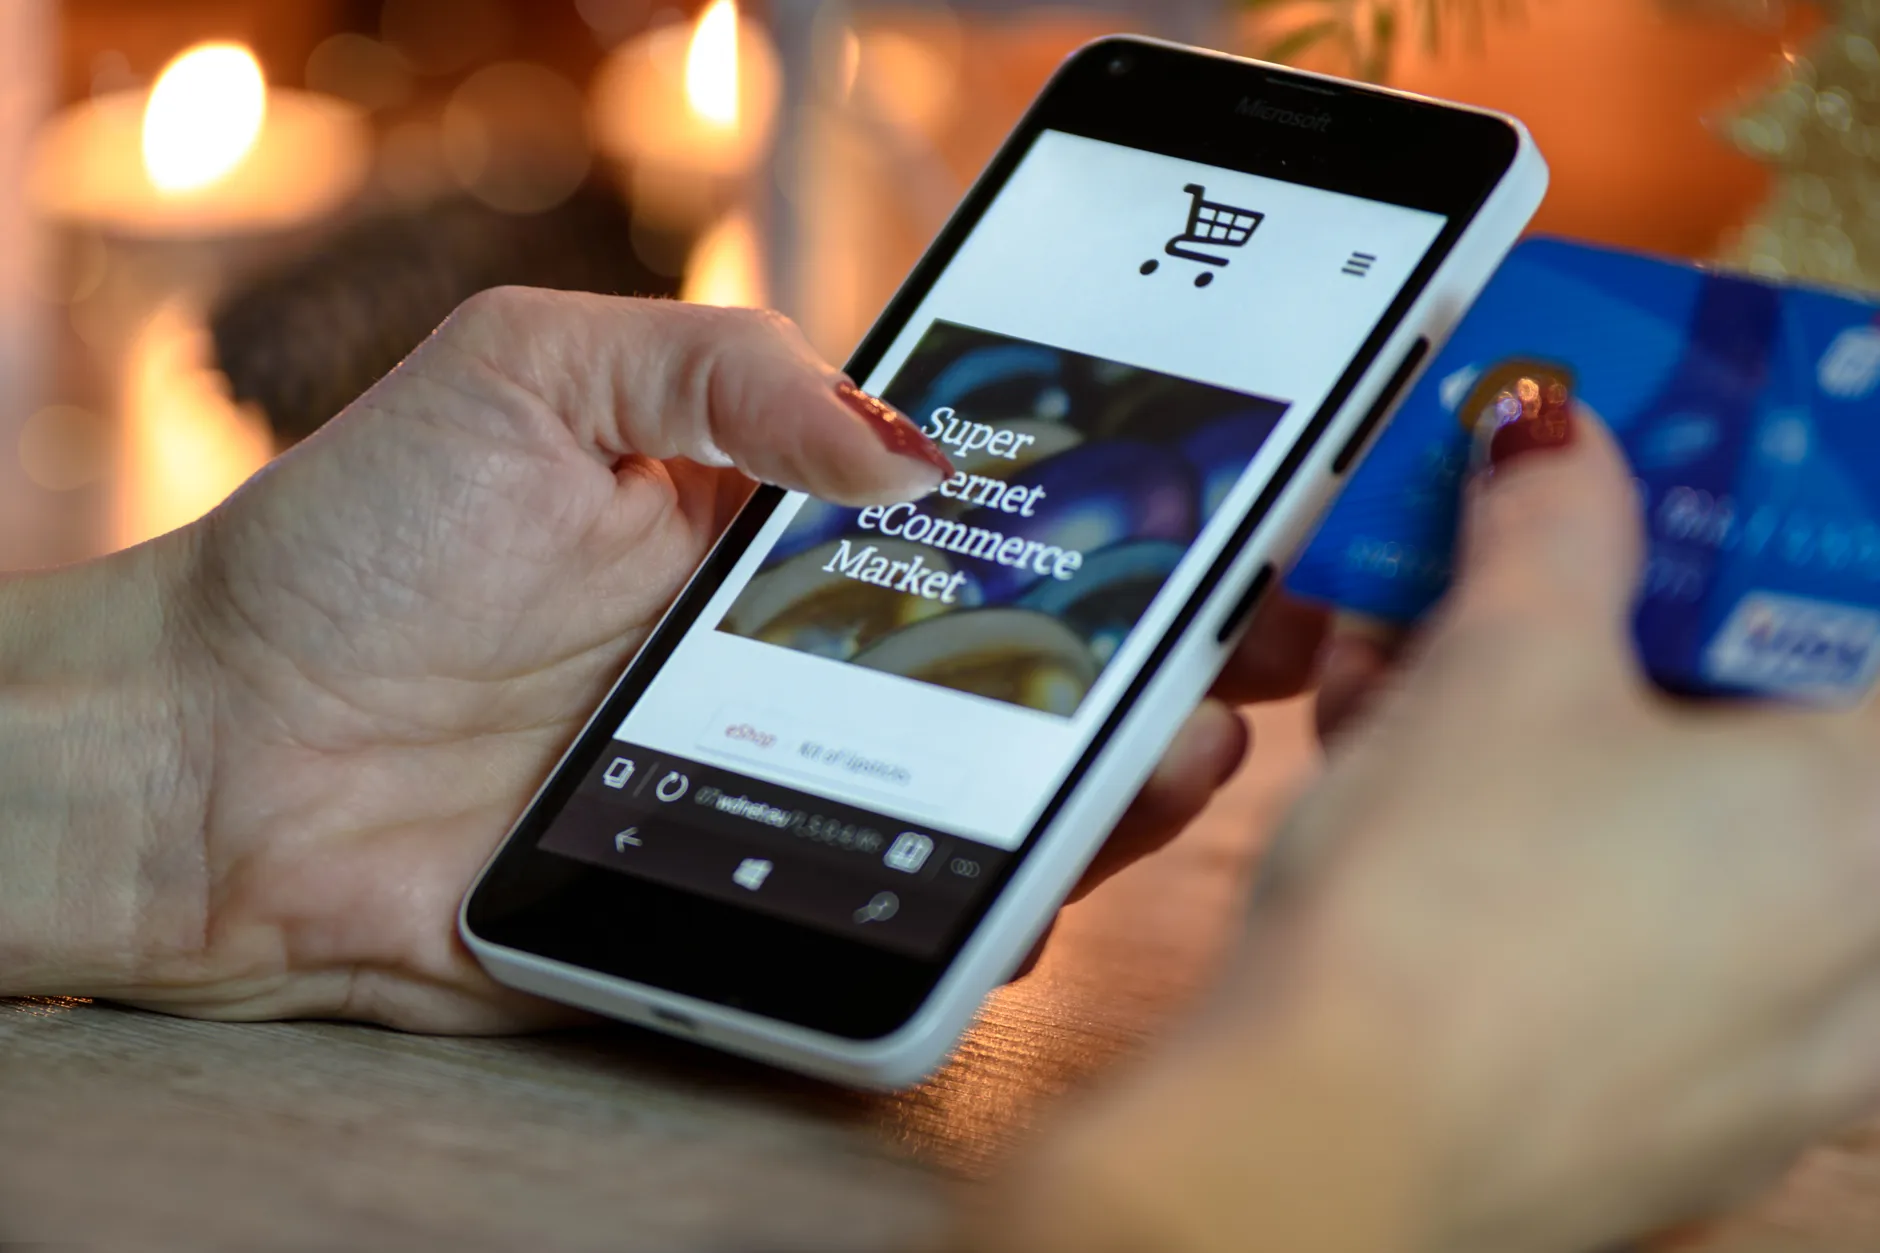 E-commerce marketplaces often come with mobile applications that can be useful in reaching out to potential customers on the go.